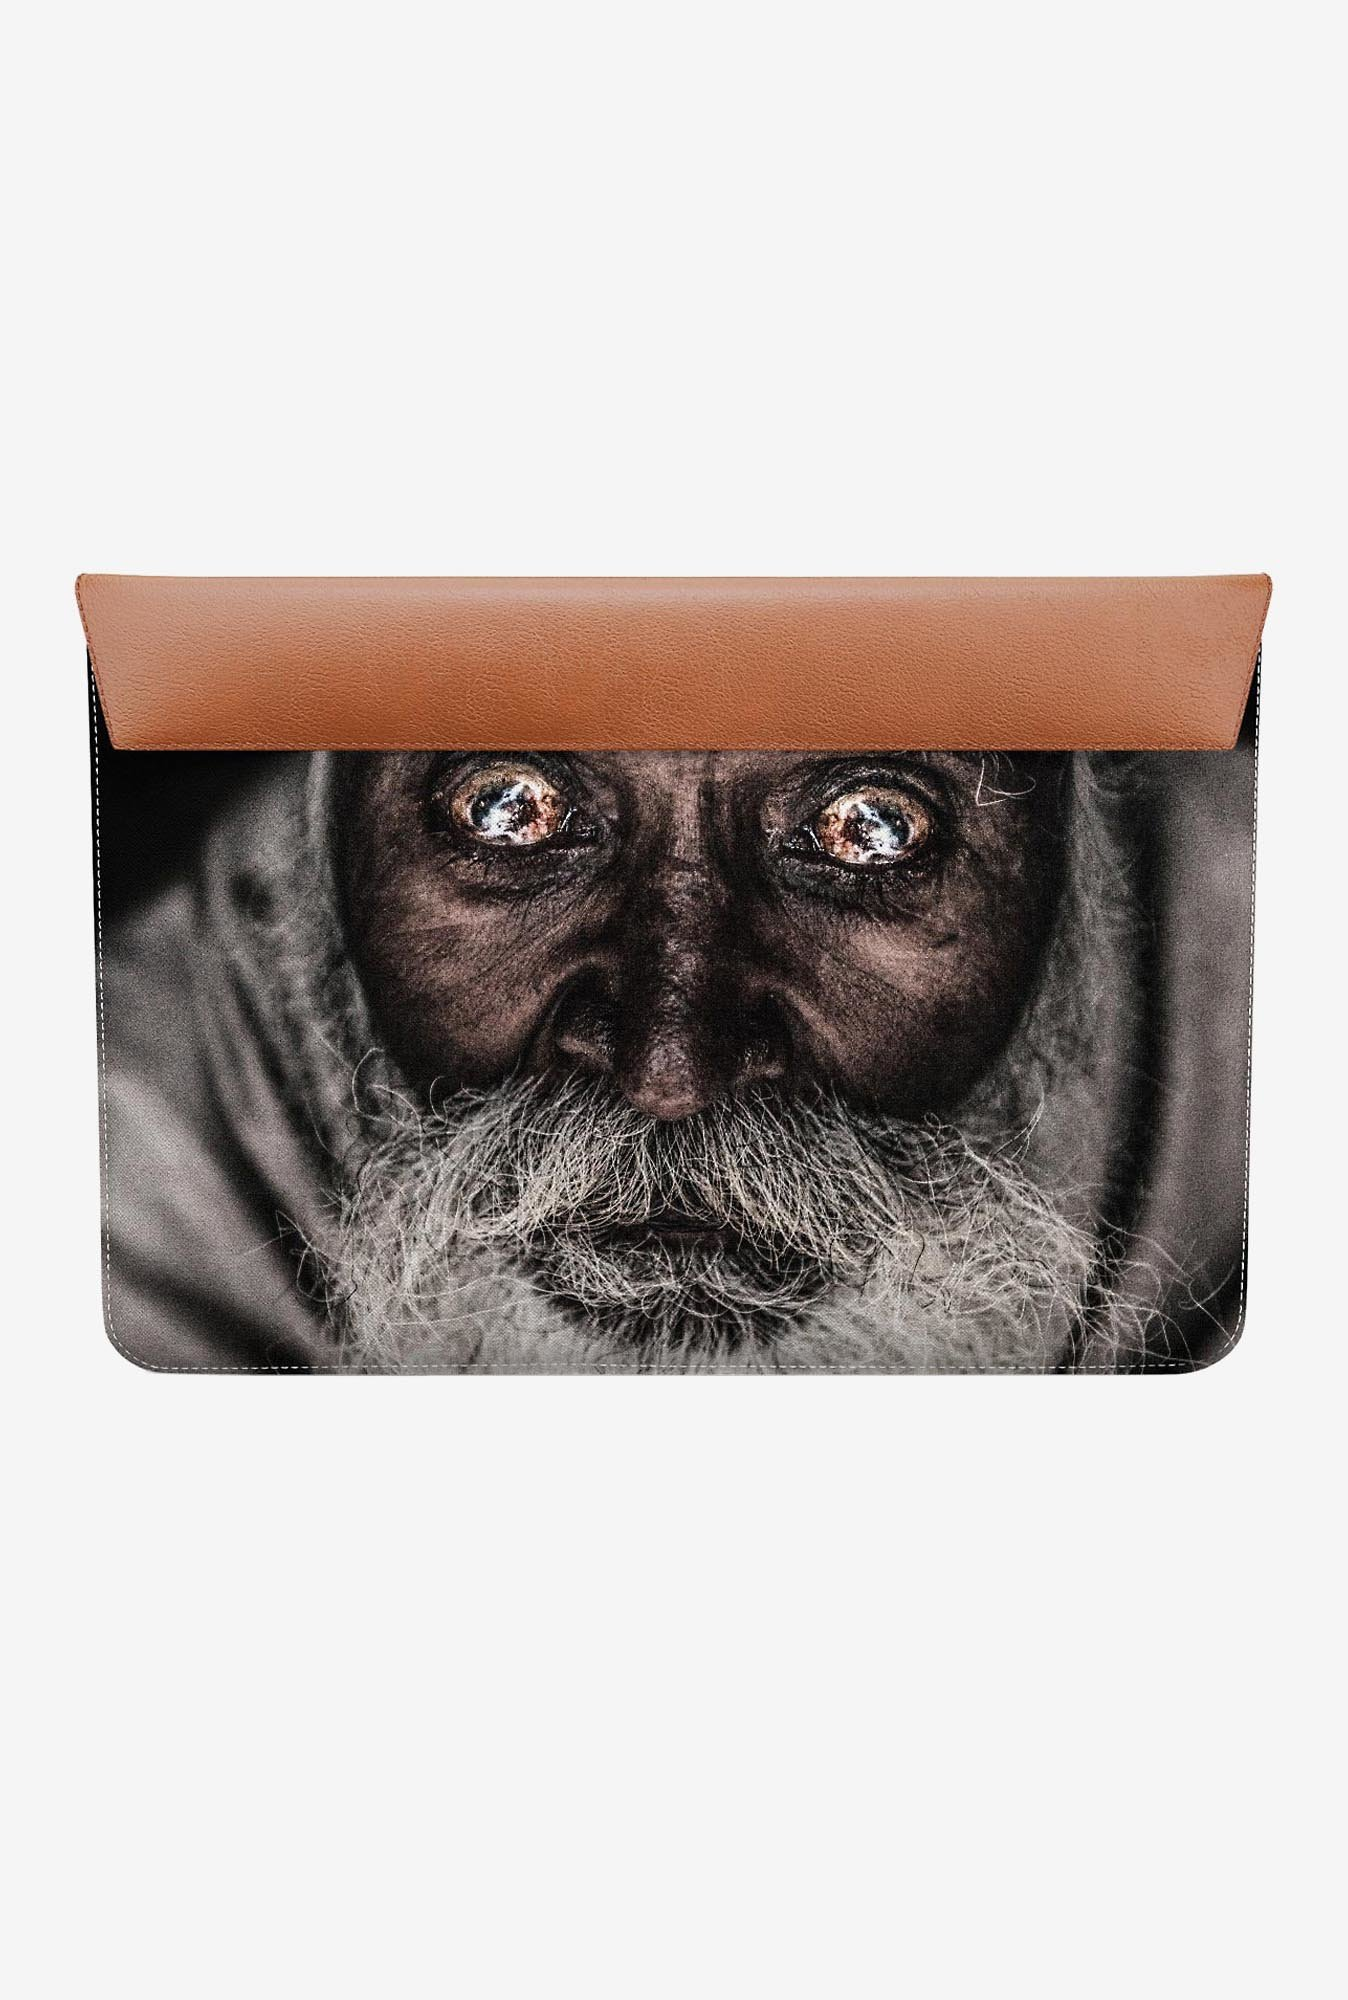 DailyObjects Crazy Eyes MacBook Air 11 Envelope Sleeve